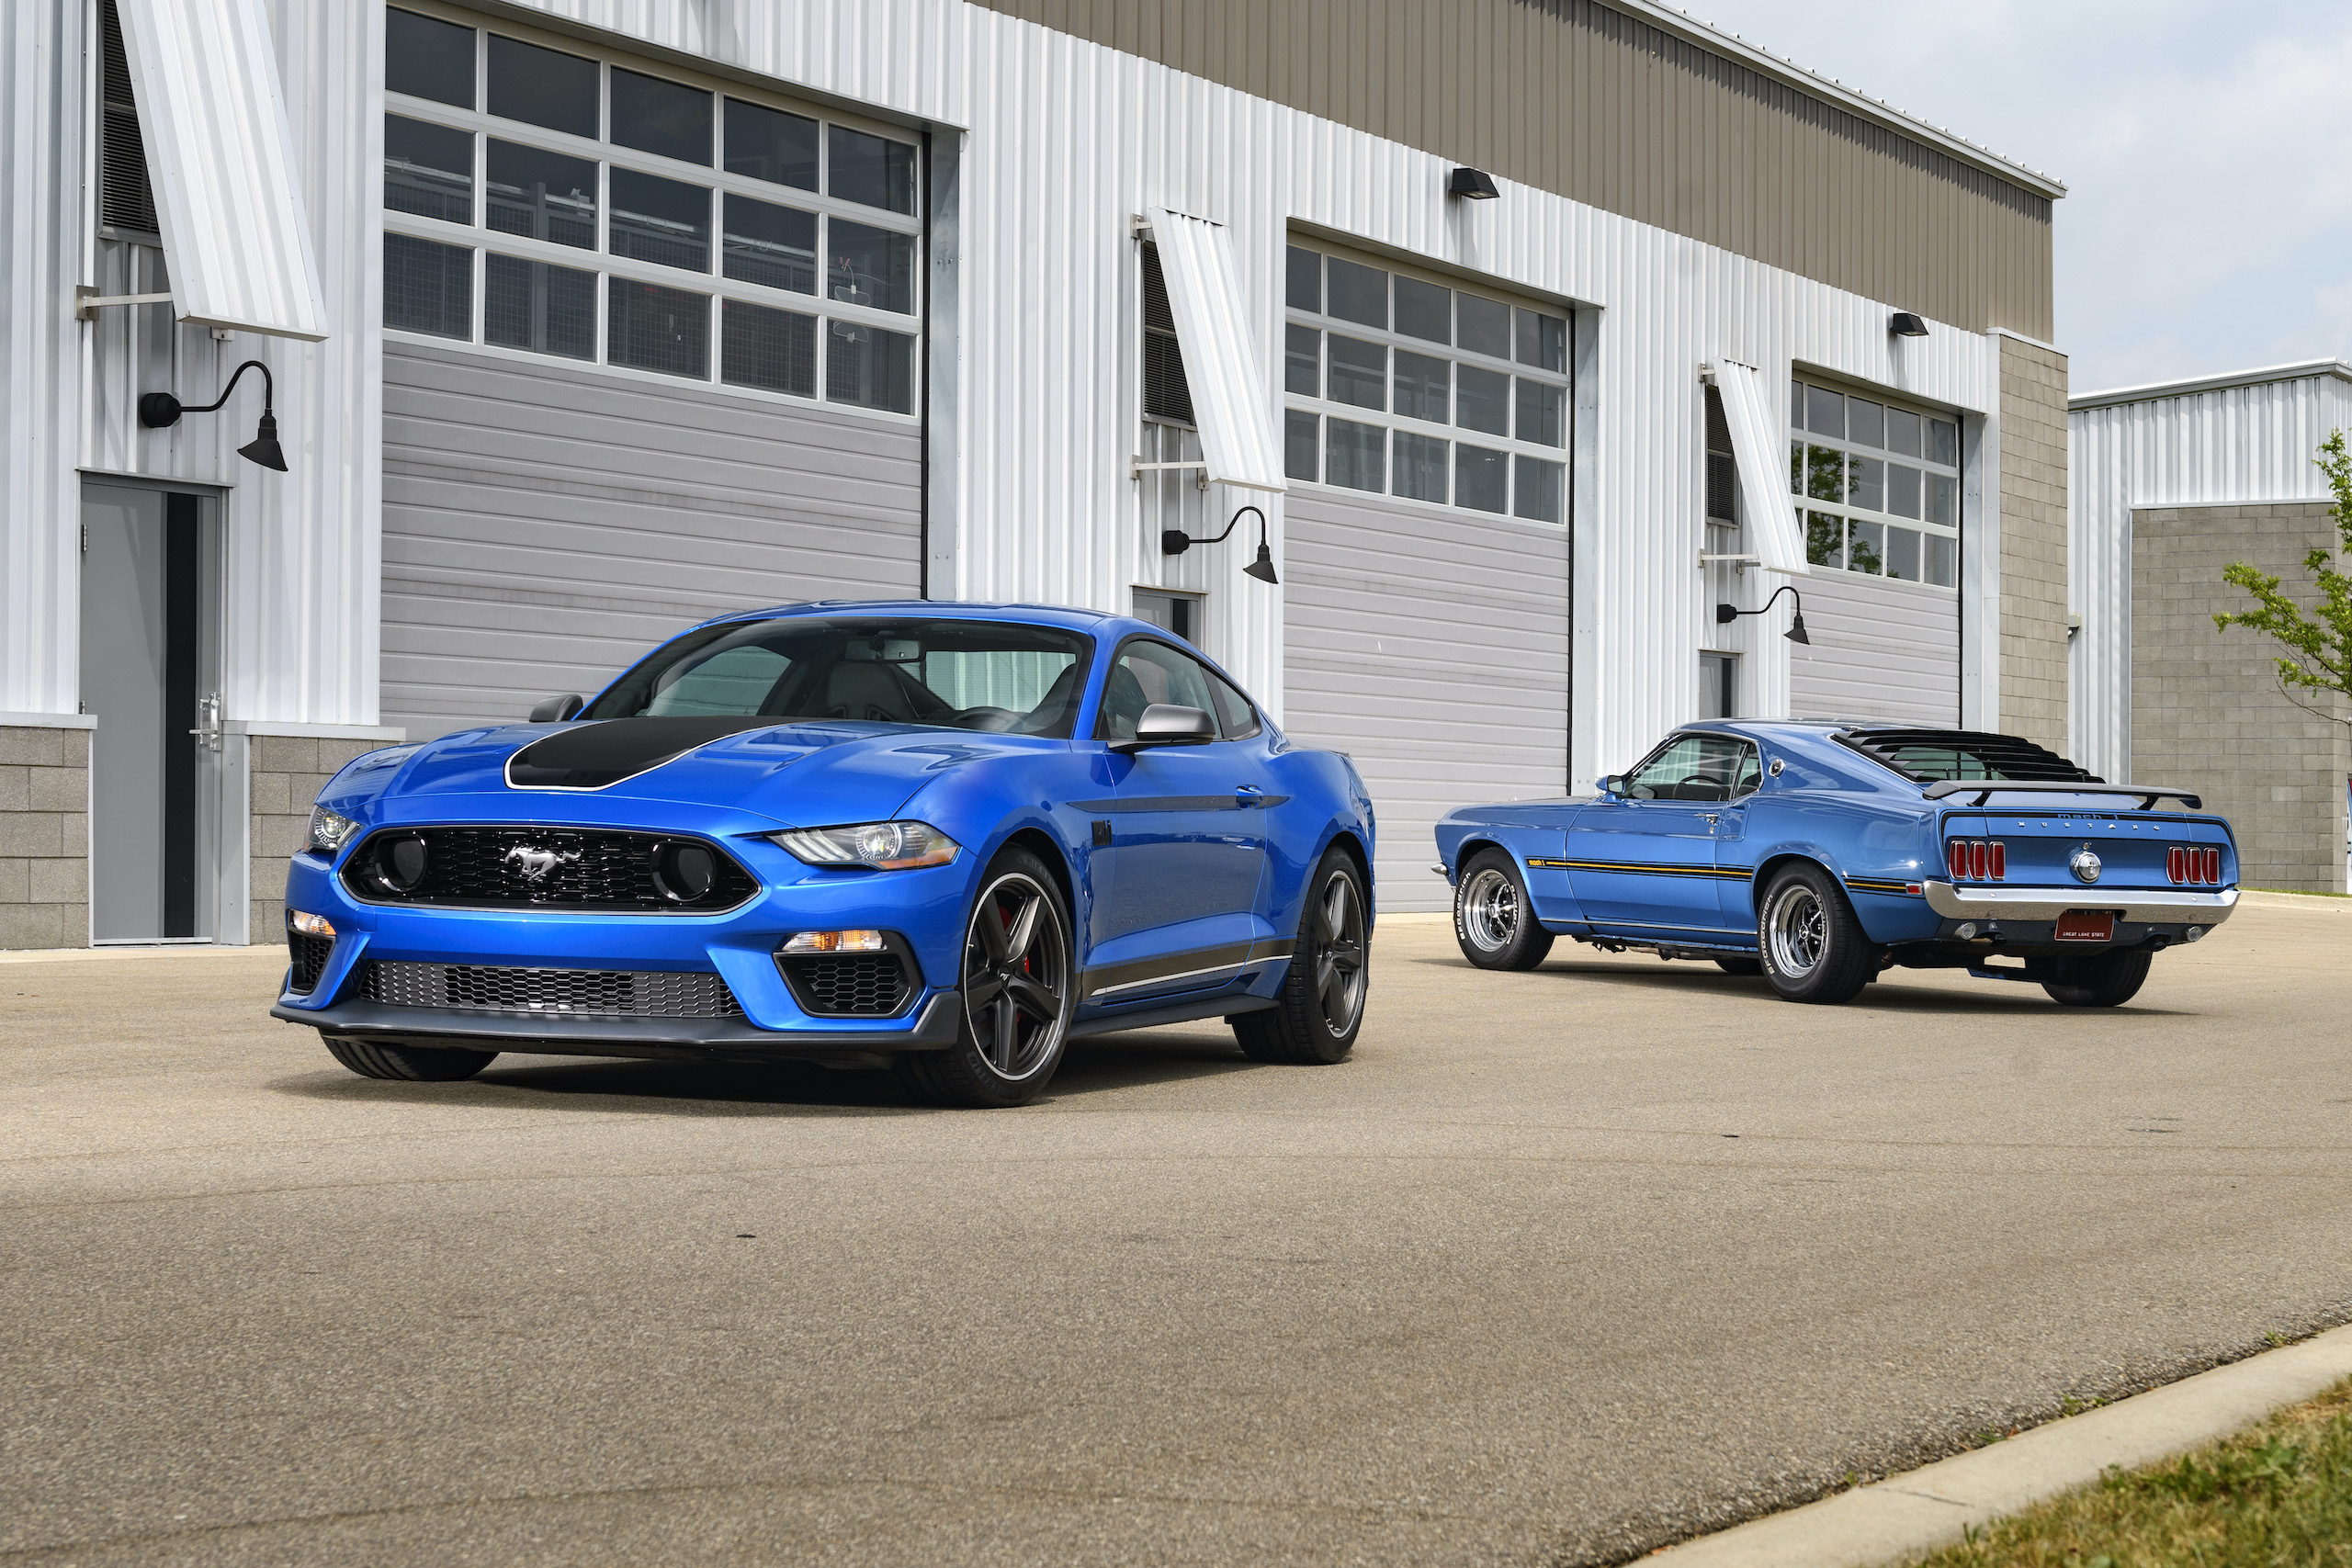 2021 Mustang Mach 1 blue front three-quarter with classic